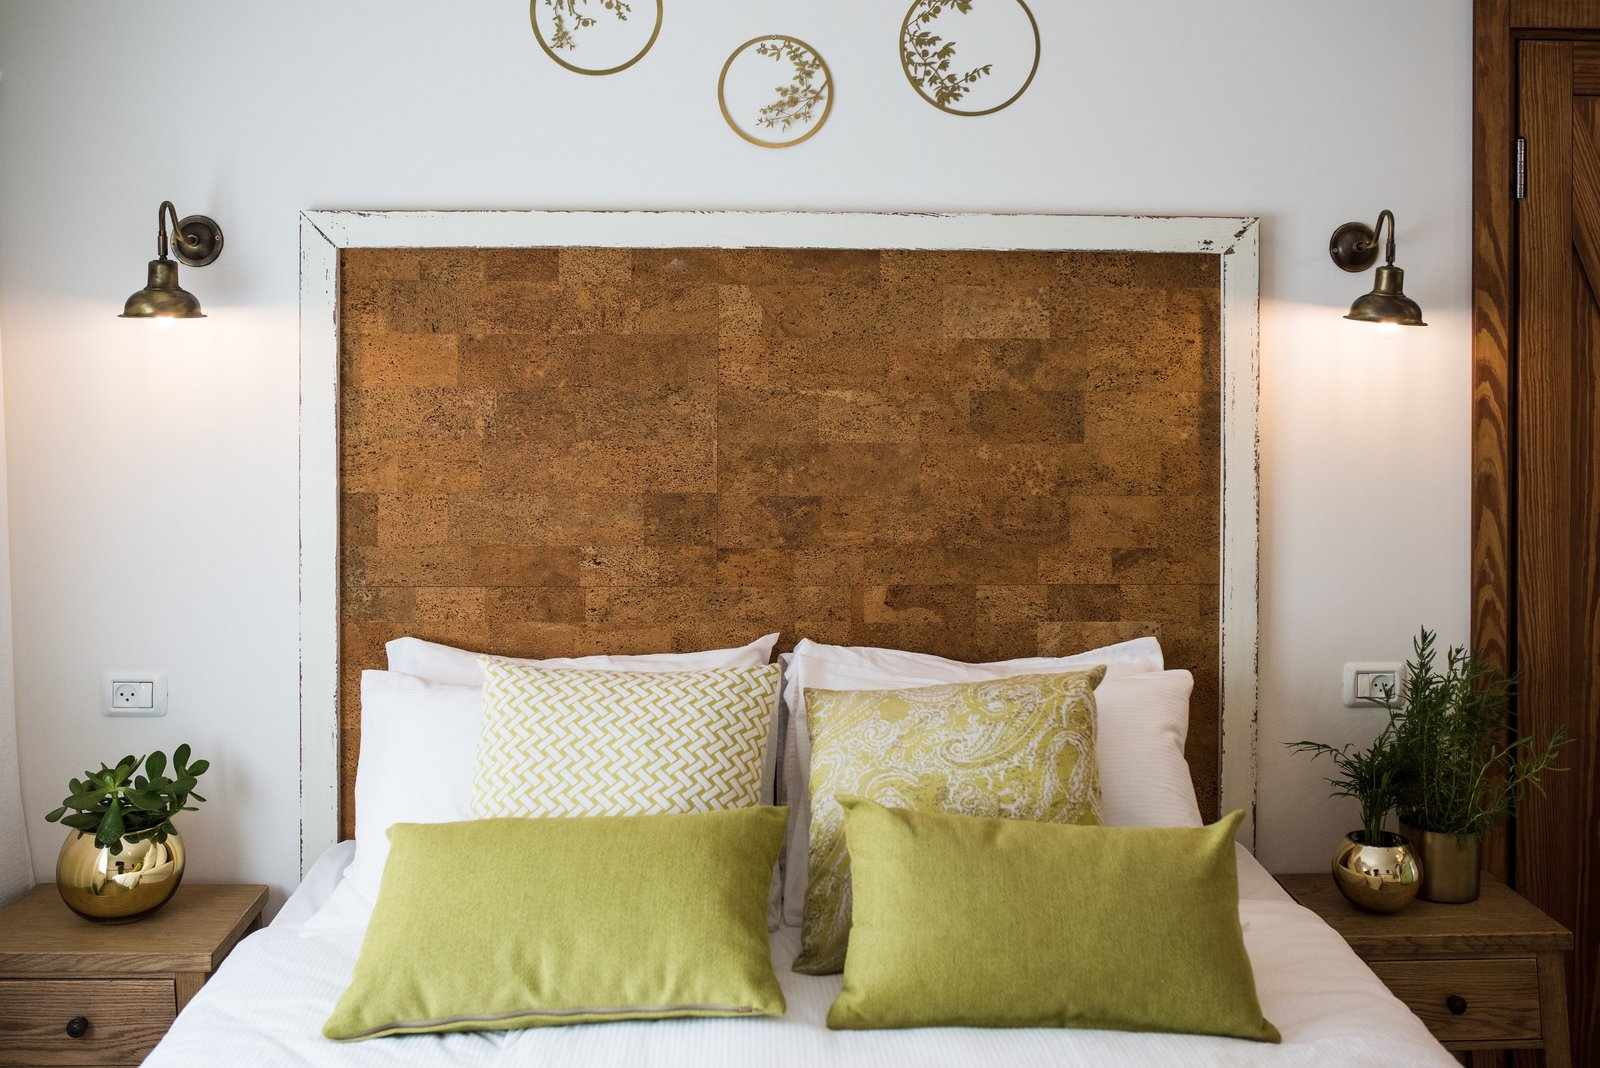 Bedroom, Bed, Wall Lighting, and Night Stands The headboard is made from cork board and painted wood  Photo 6 of 9 in A Crash Course on Cork: The Eco-Friendly Material That's Popping Up Everywhere from Golden apple guest rooms